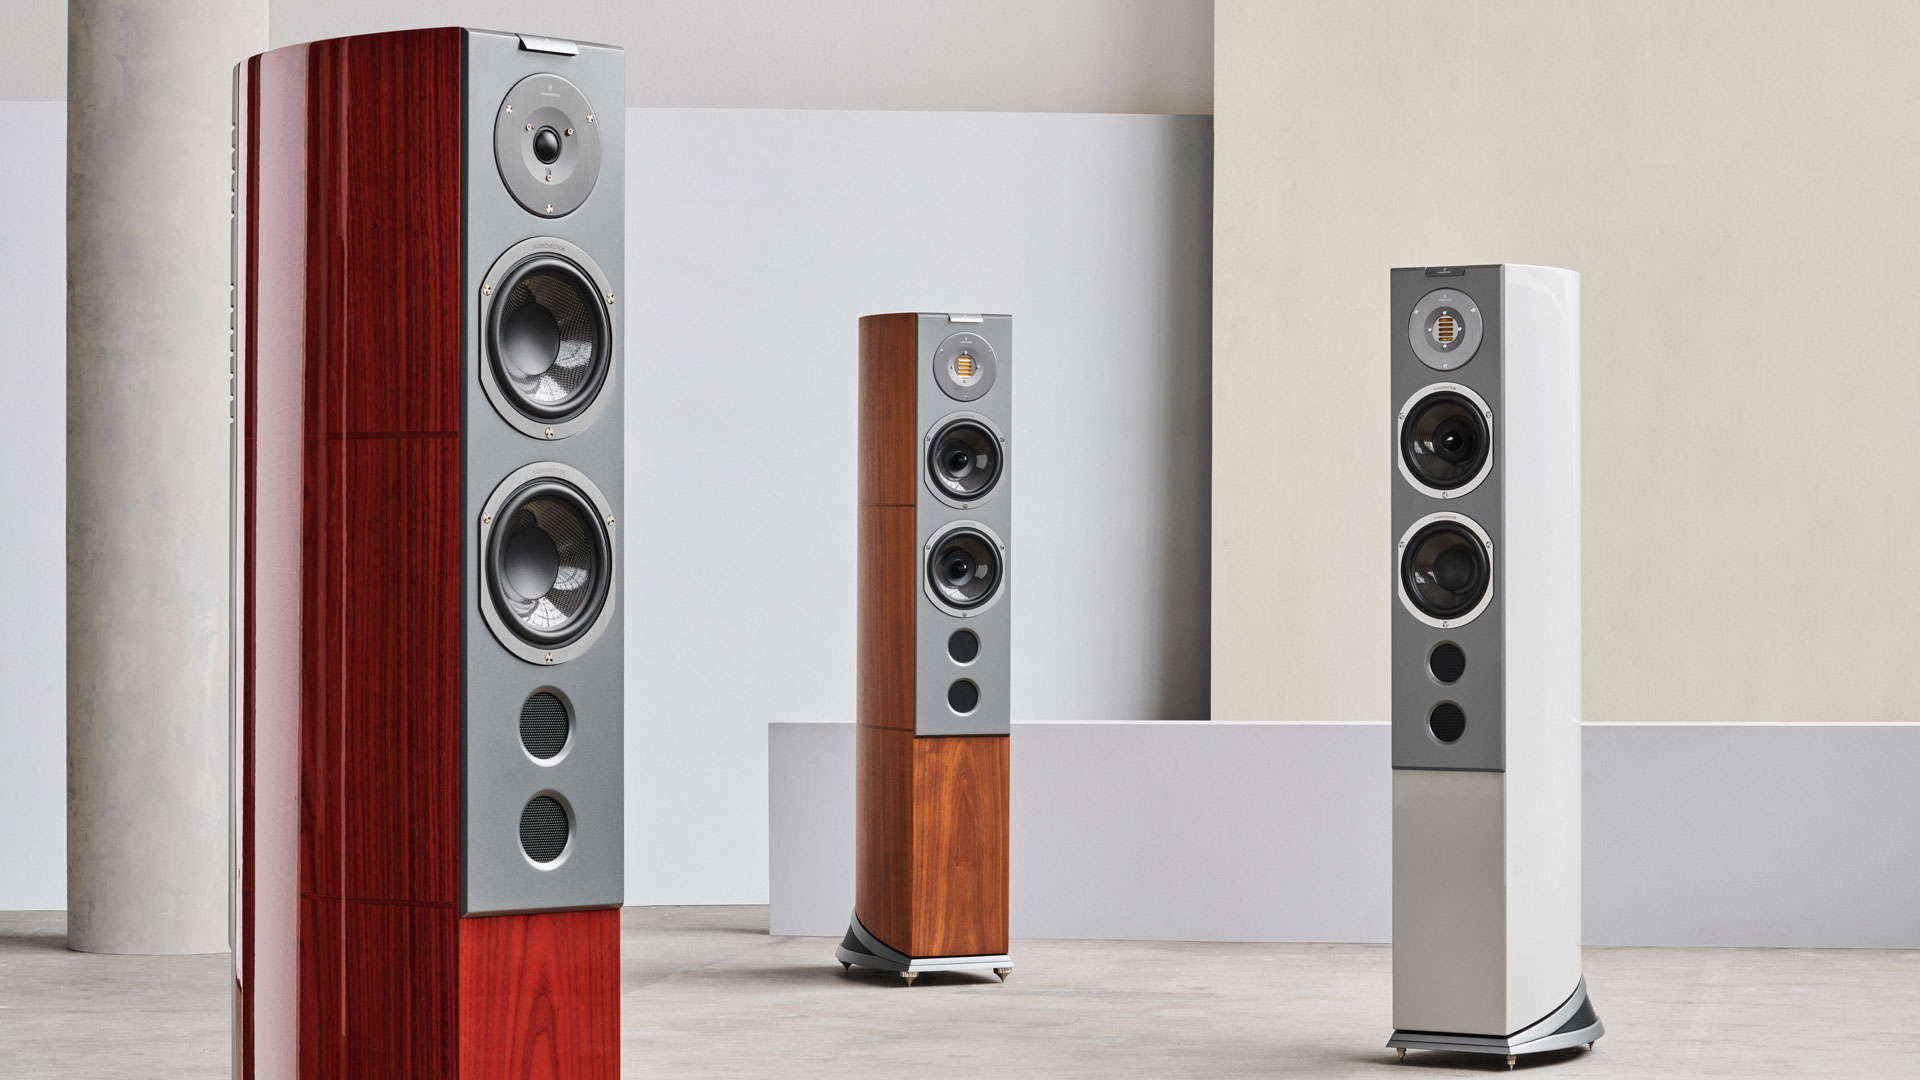 Audiovector R 6 Series (Image Credit: Audiovector)